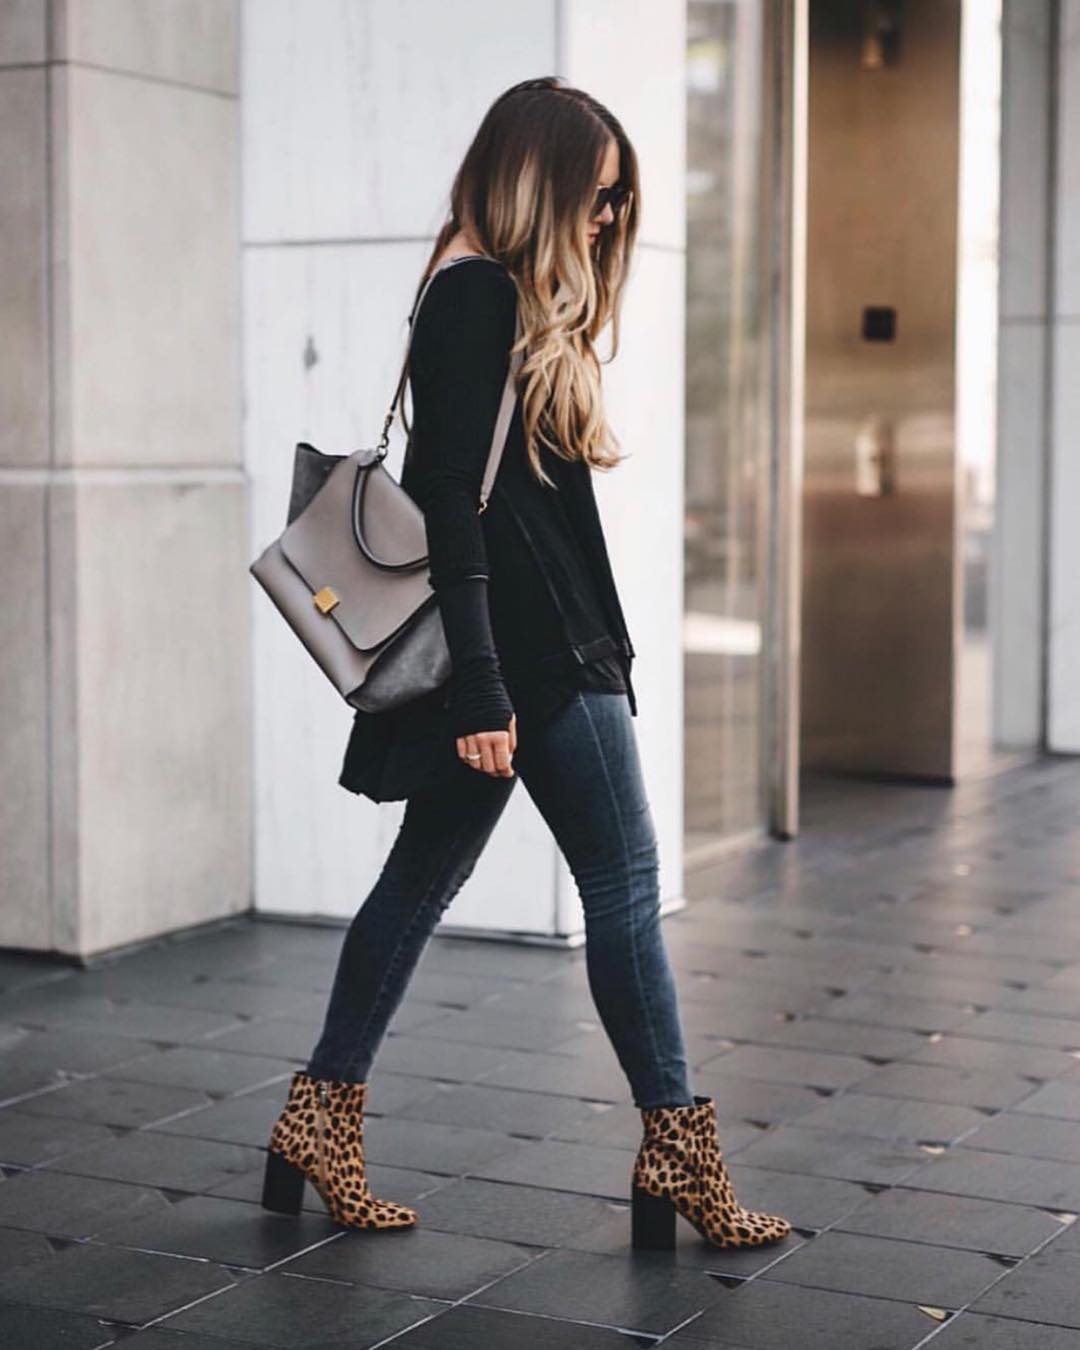 How To Wear Leopard Print Ankle Boots This Fall 2019